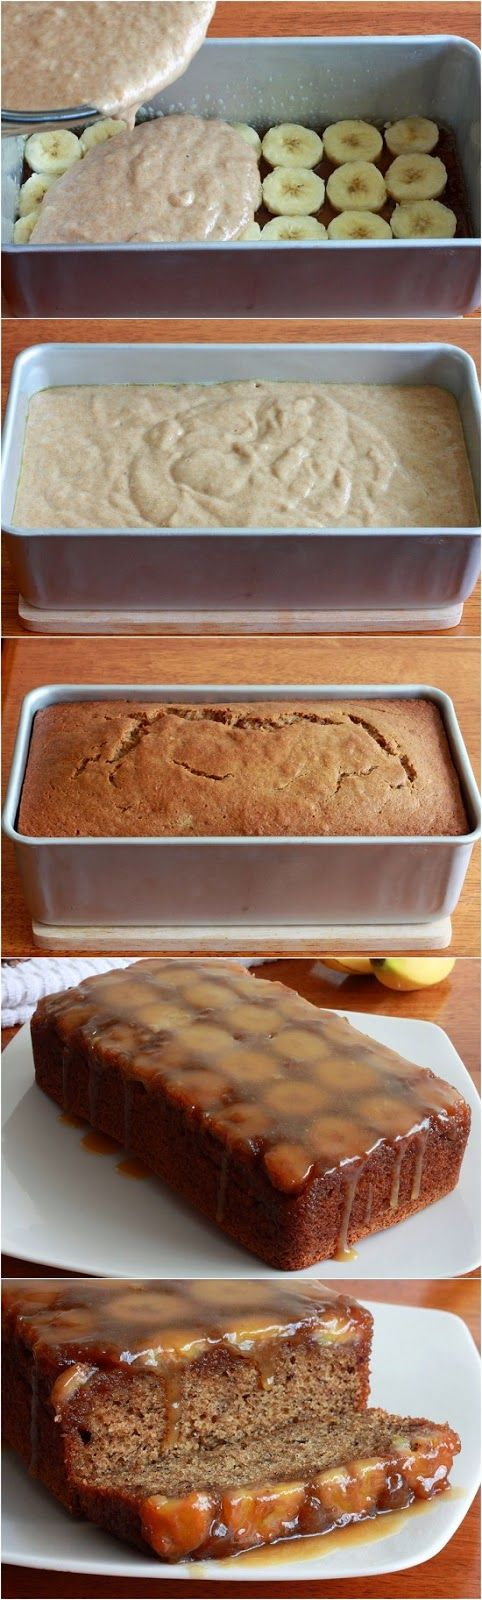 Caramel Banana Upside Down Bread~ a deliciously moist, caramelly banana bread cake. Once you've tried this you may never go back to the original way of making banana bread again!